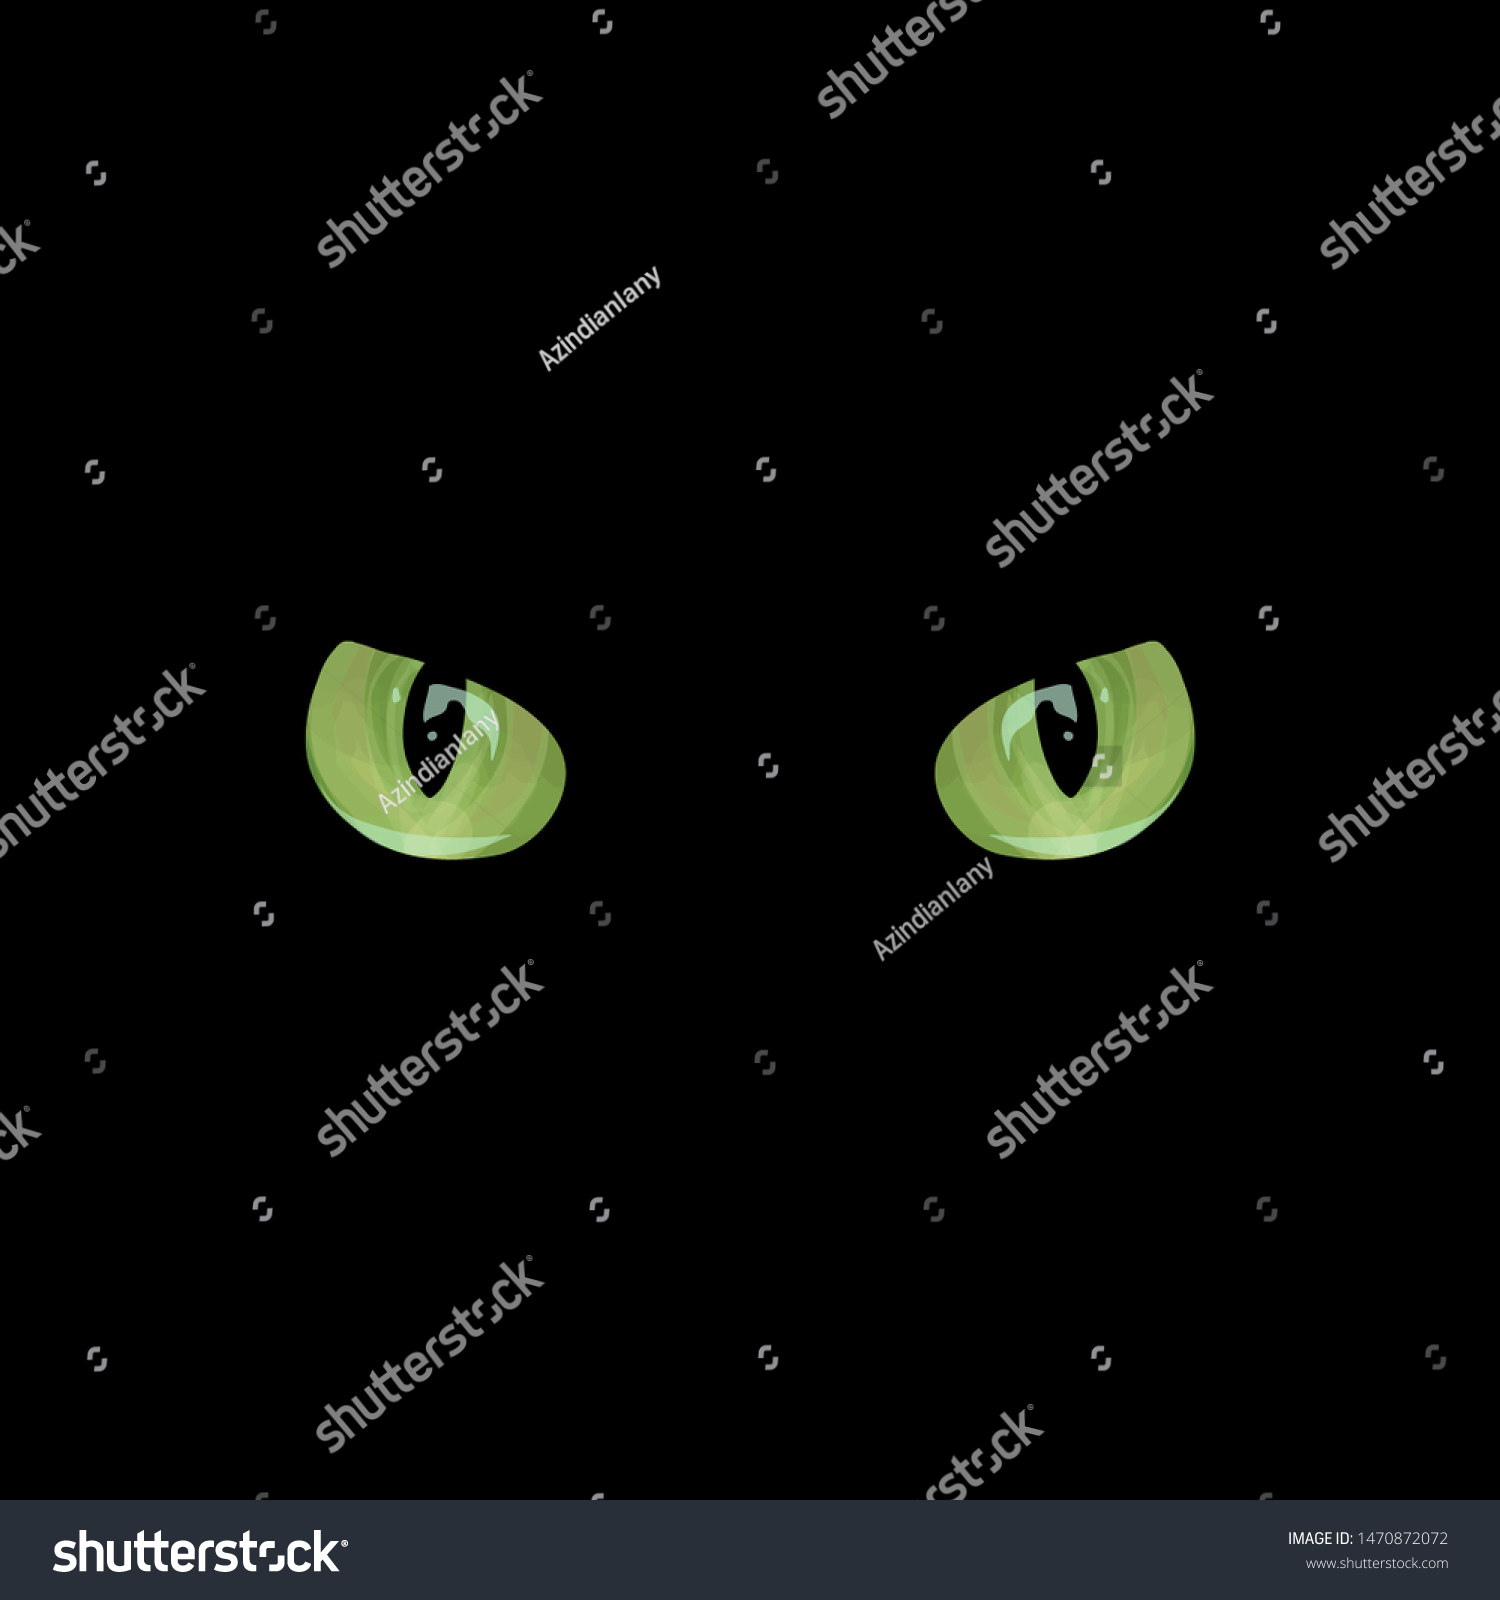 Black Cat Friday 13th Freehand Design Stock Vector Royalty Free